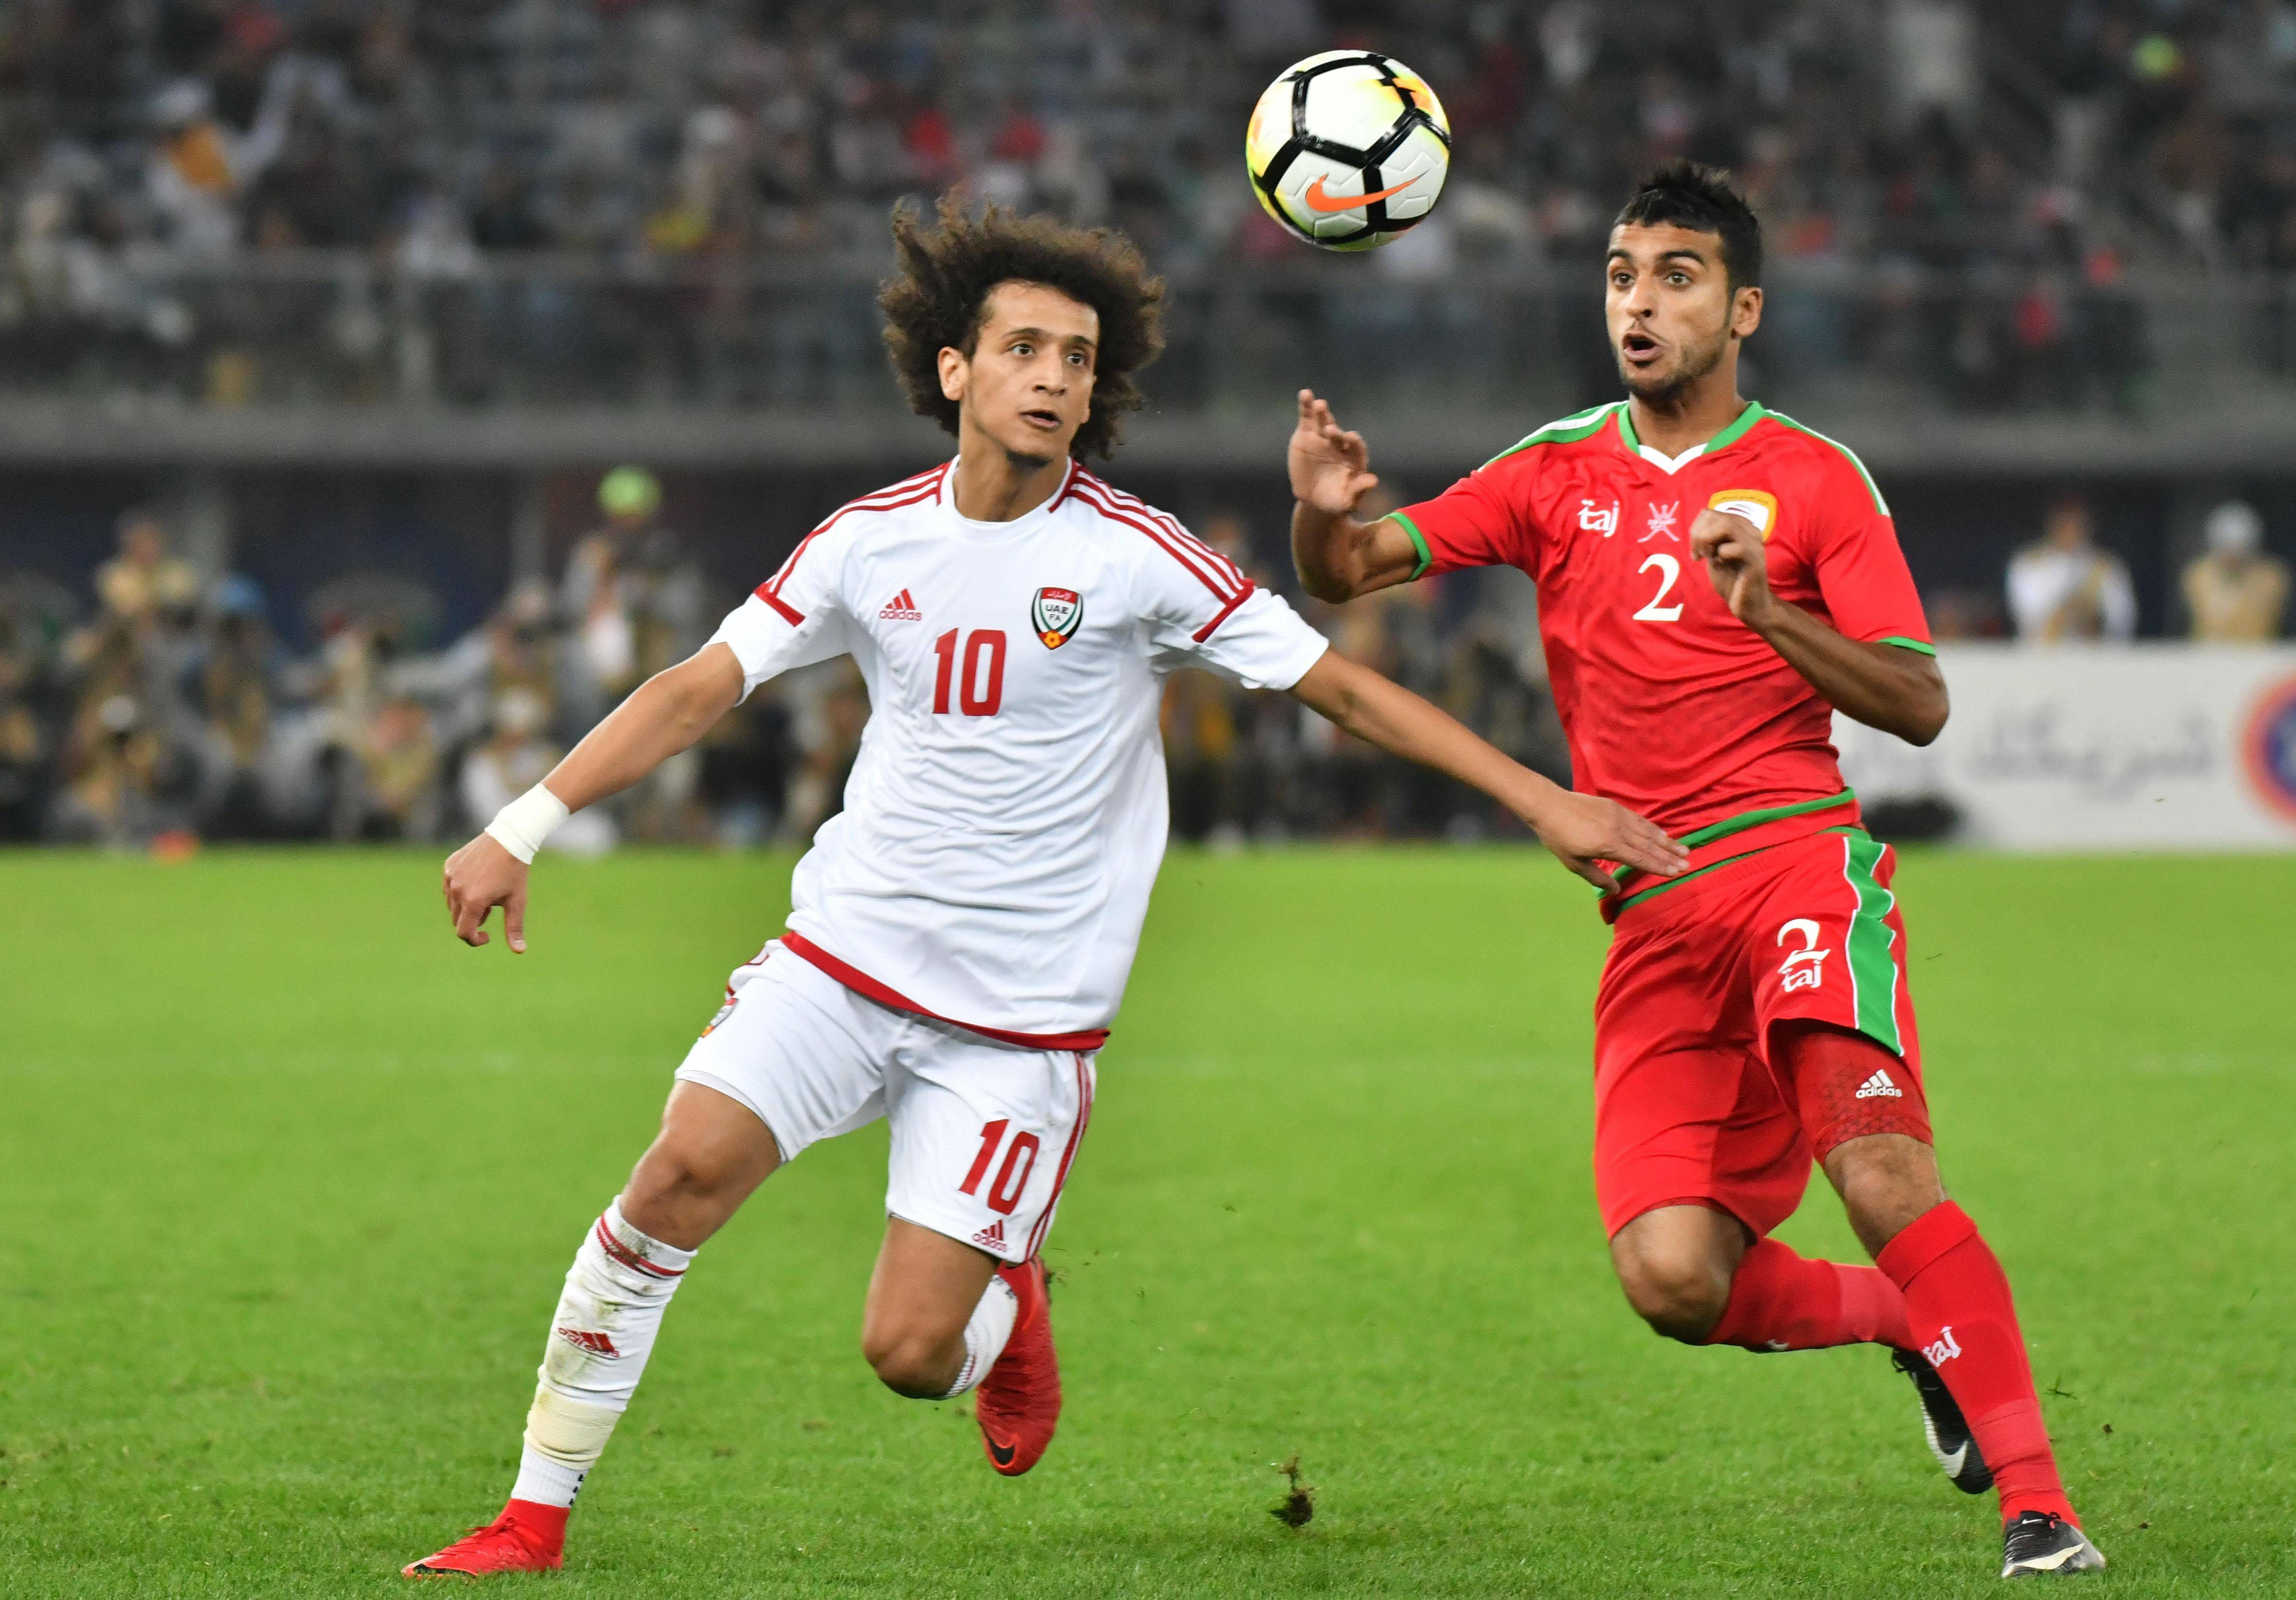 UAE to take part in 22-team Arab Cup, says Fifa